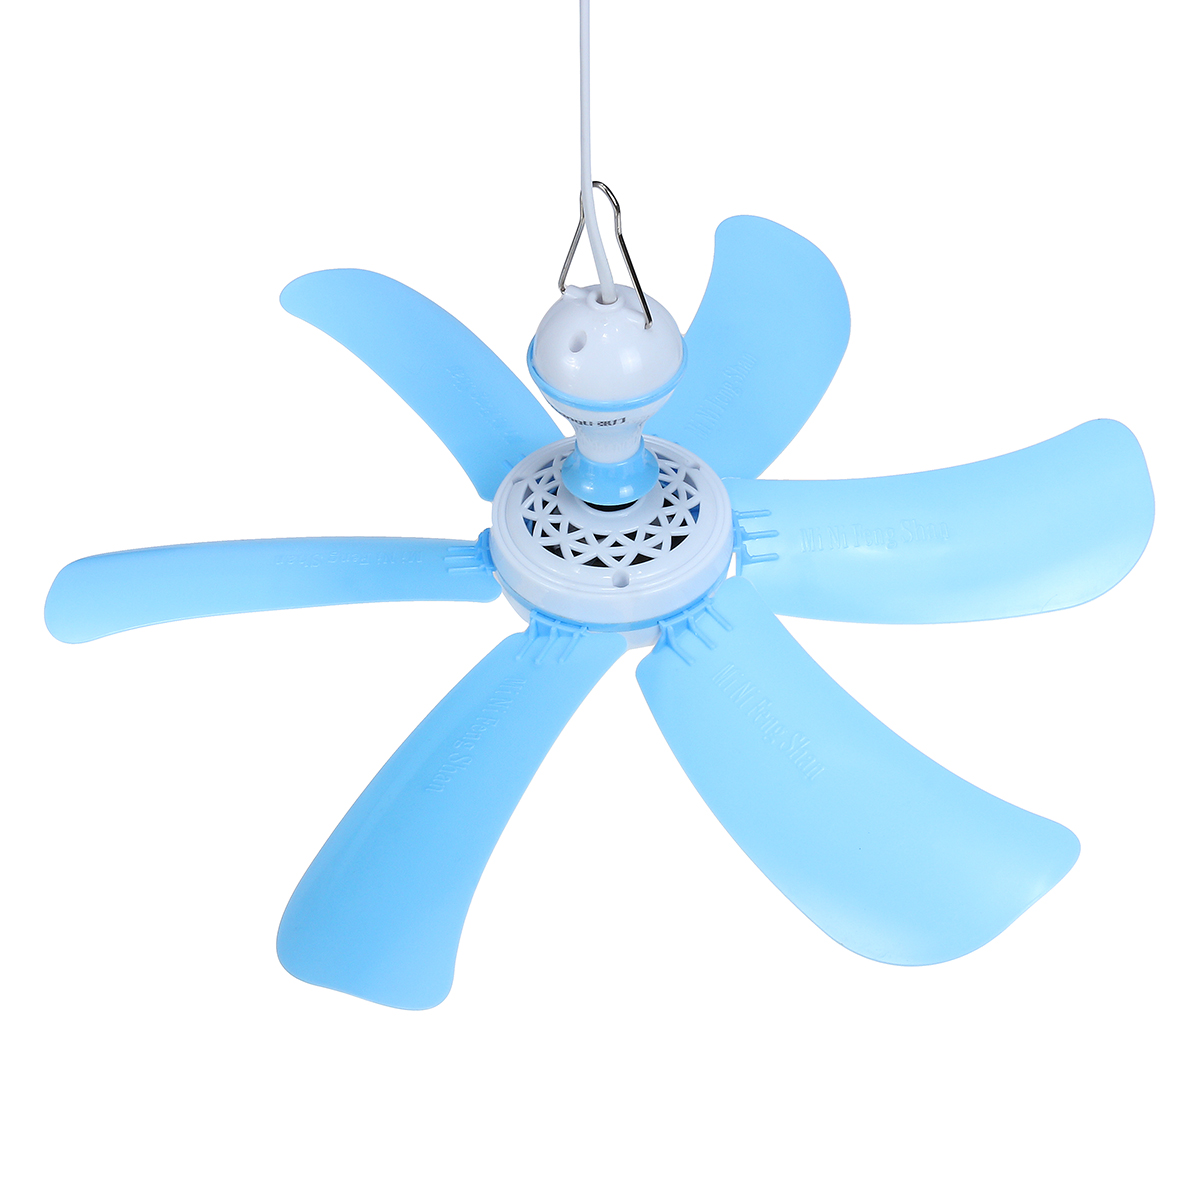 220V 7W Portable 6 Blades Mini Ceiling Fan with White ABS Blades Power Plug Switch Energy Saving Fan